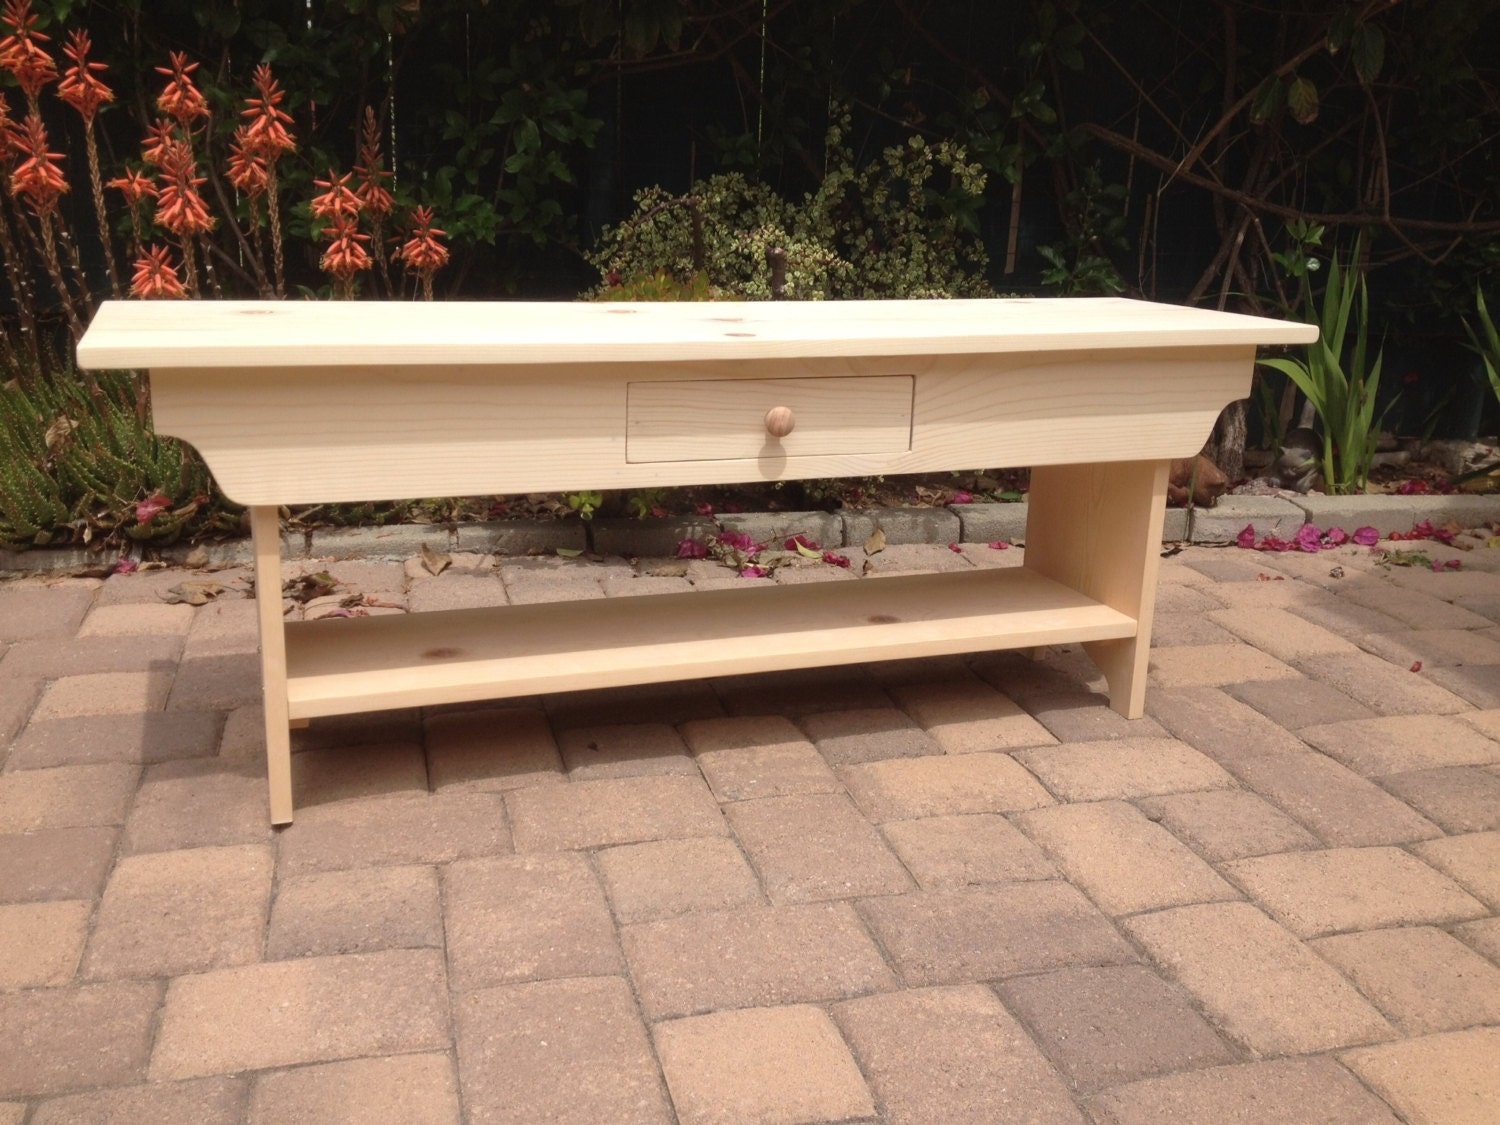 Unfinished 4 Foot Wooden Bench With Drawer By Squarenailfurniture